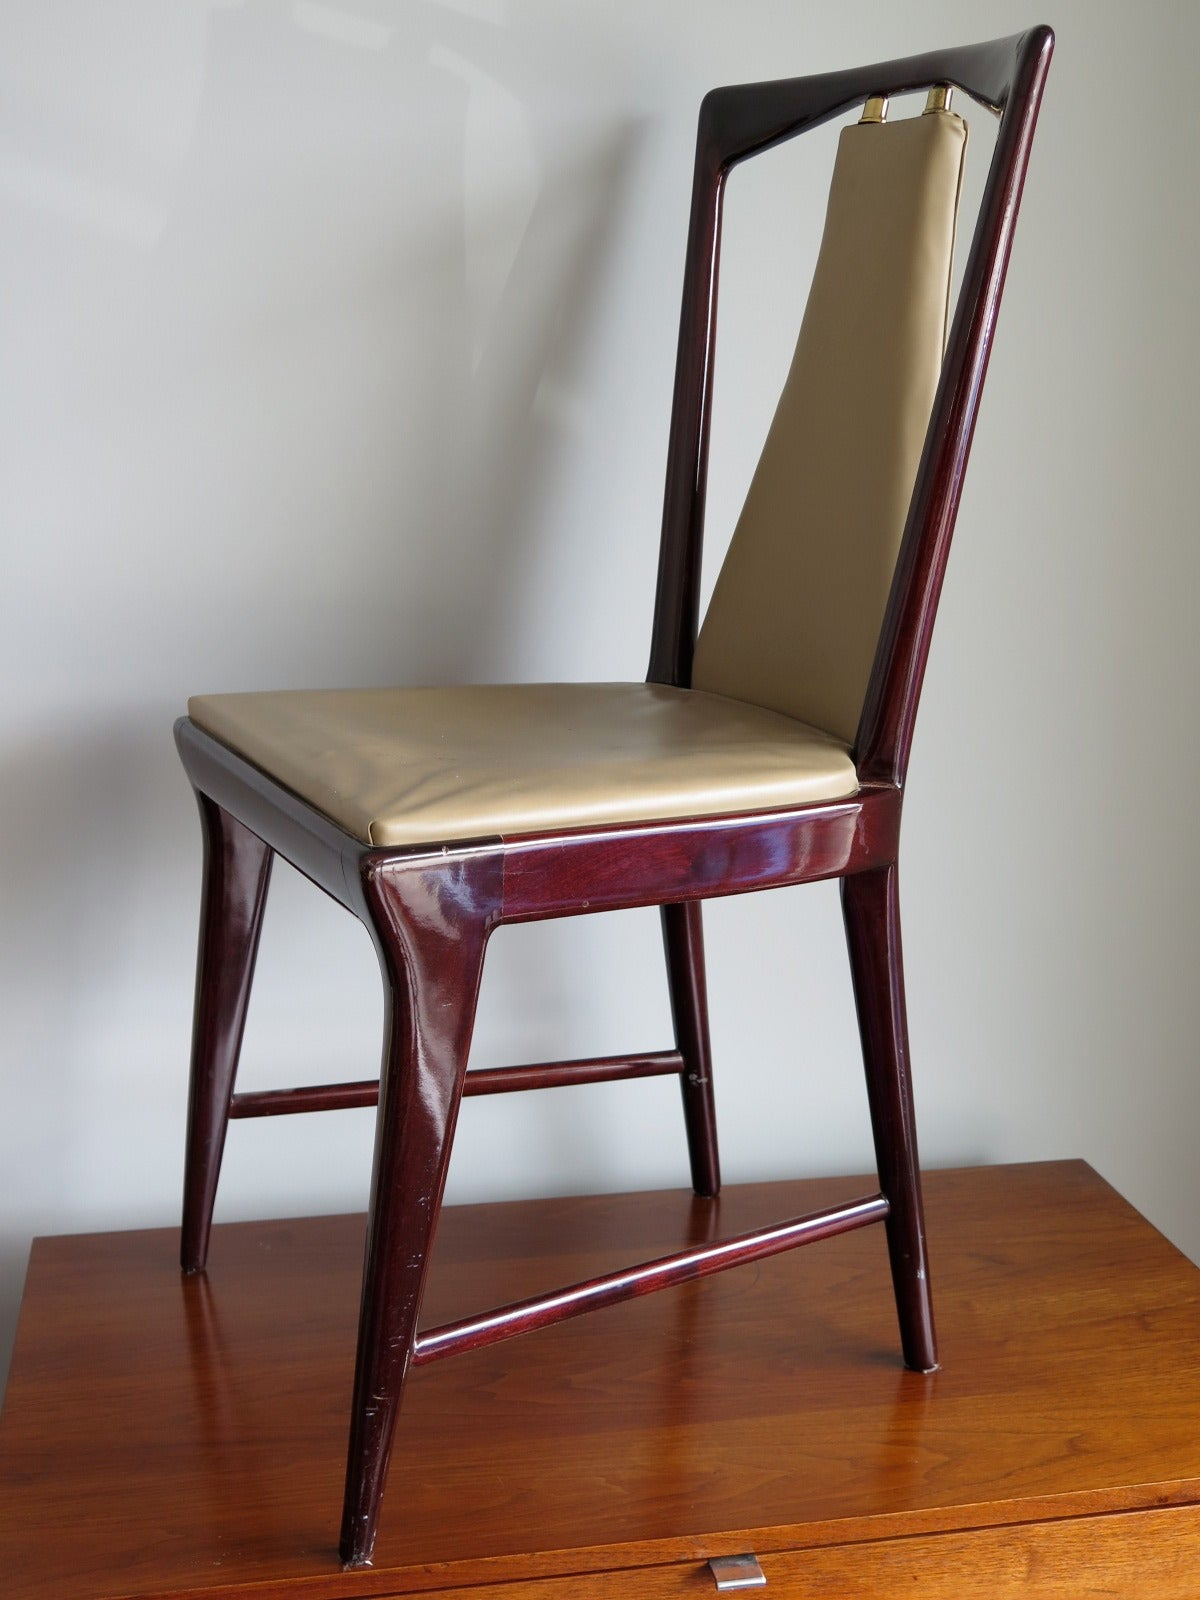 A set of 12 elegant dining chairs in the style of Osvaldo Borsani, Italy, circa 1955. Mahogany with brass details.